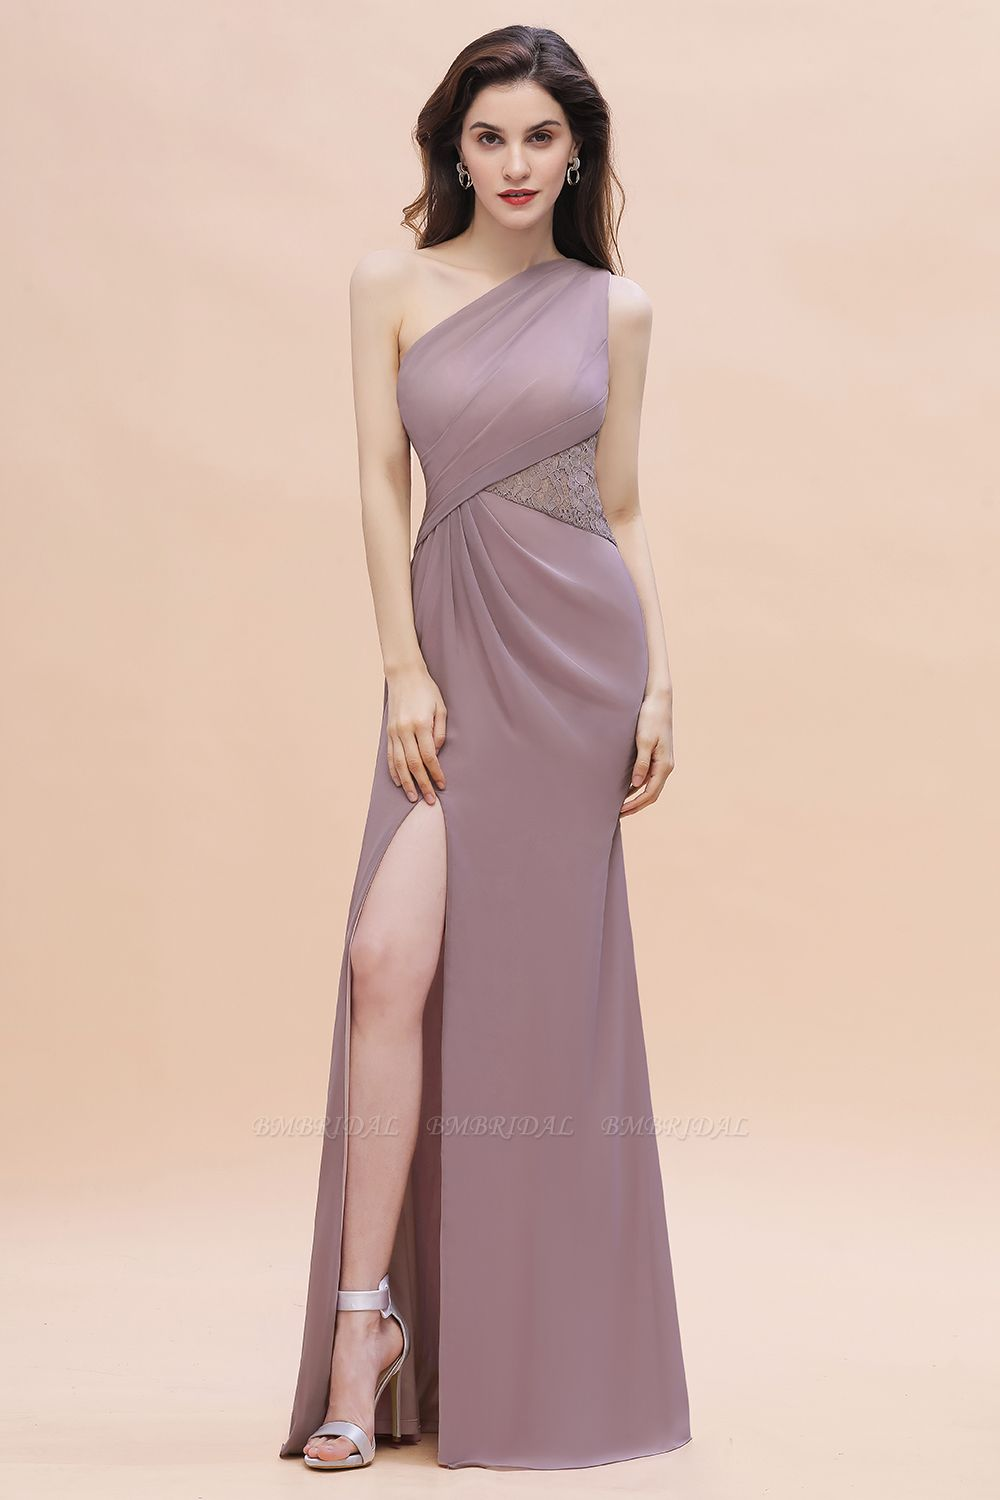 BMbridal Chic One-Shoulder Dusk Chiffon Lace Ruffle Bridesmaid Dress with Front Slit On Sale